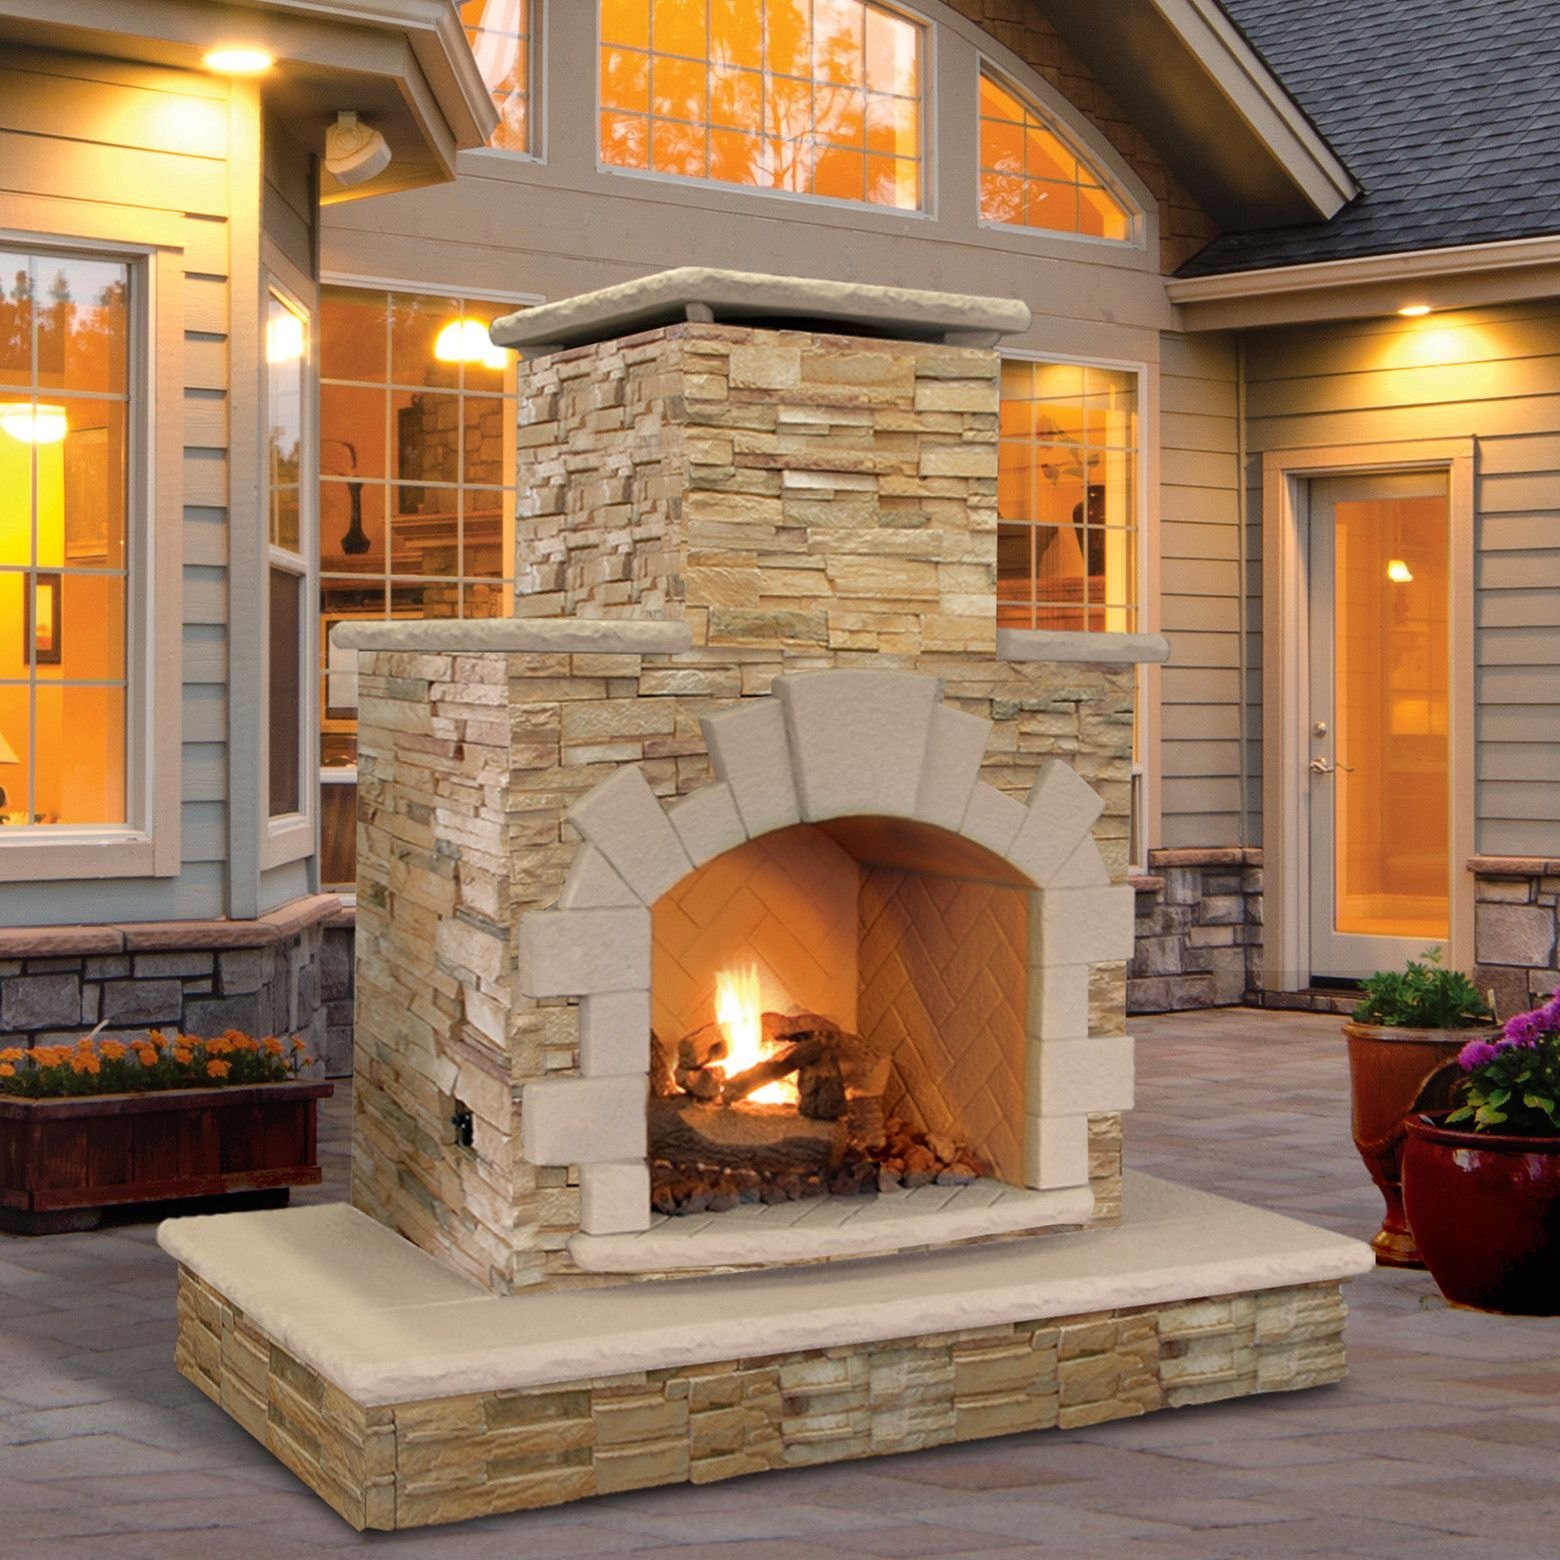 Calflame Natural Stone Propane Gas Outdoor Fireplace Reviews